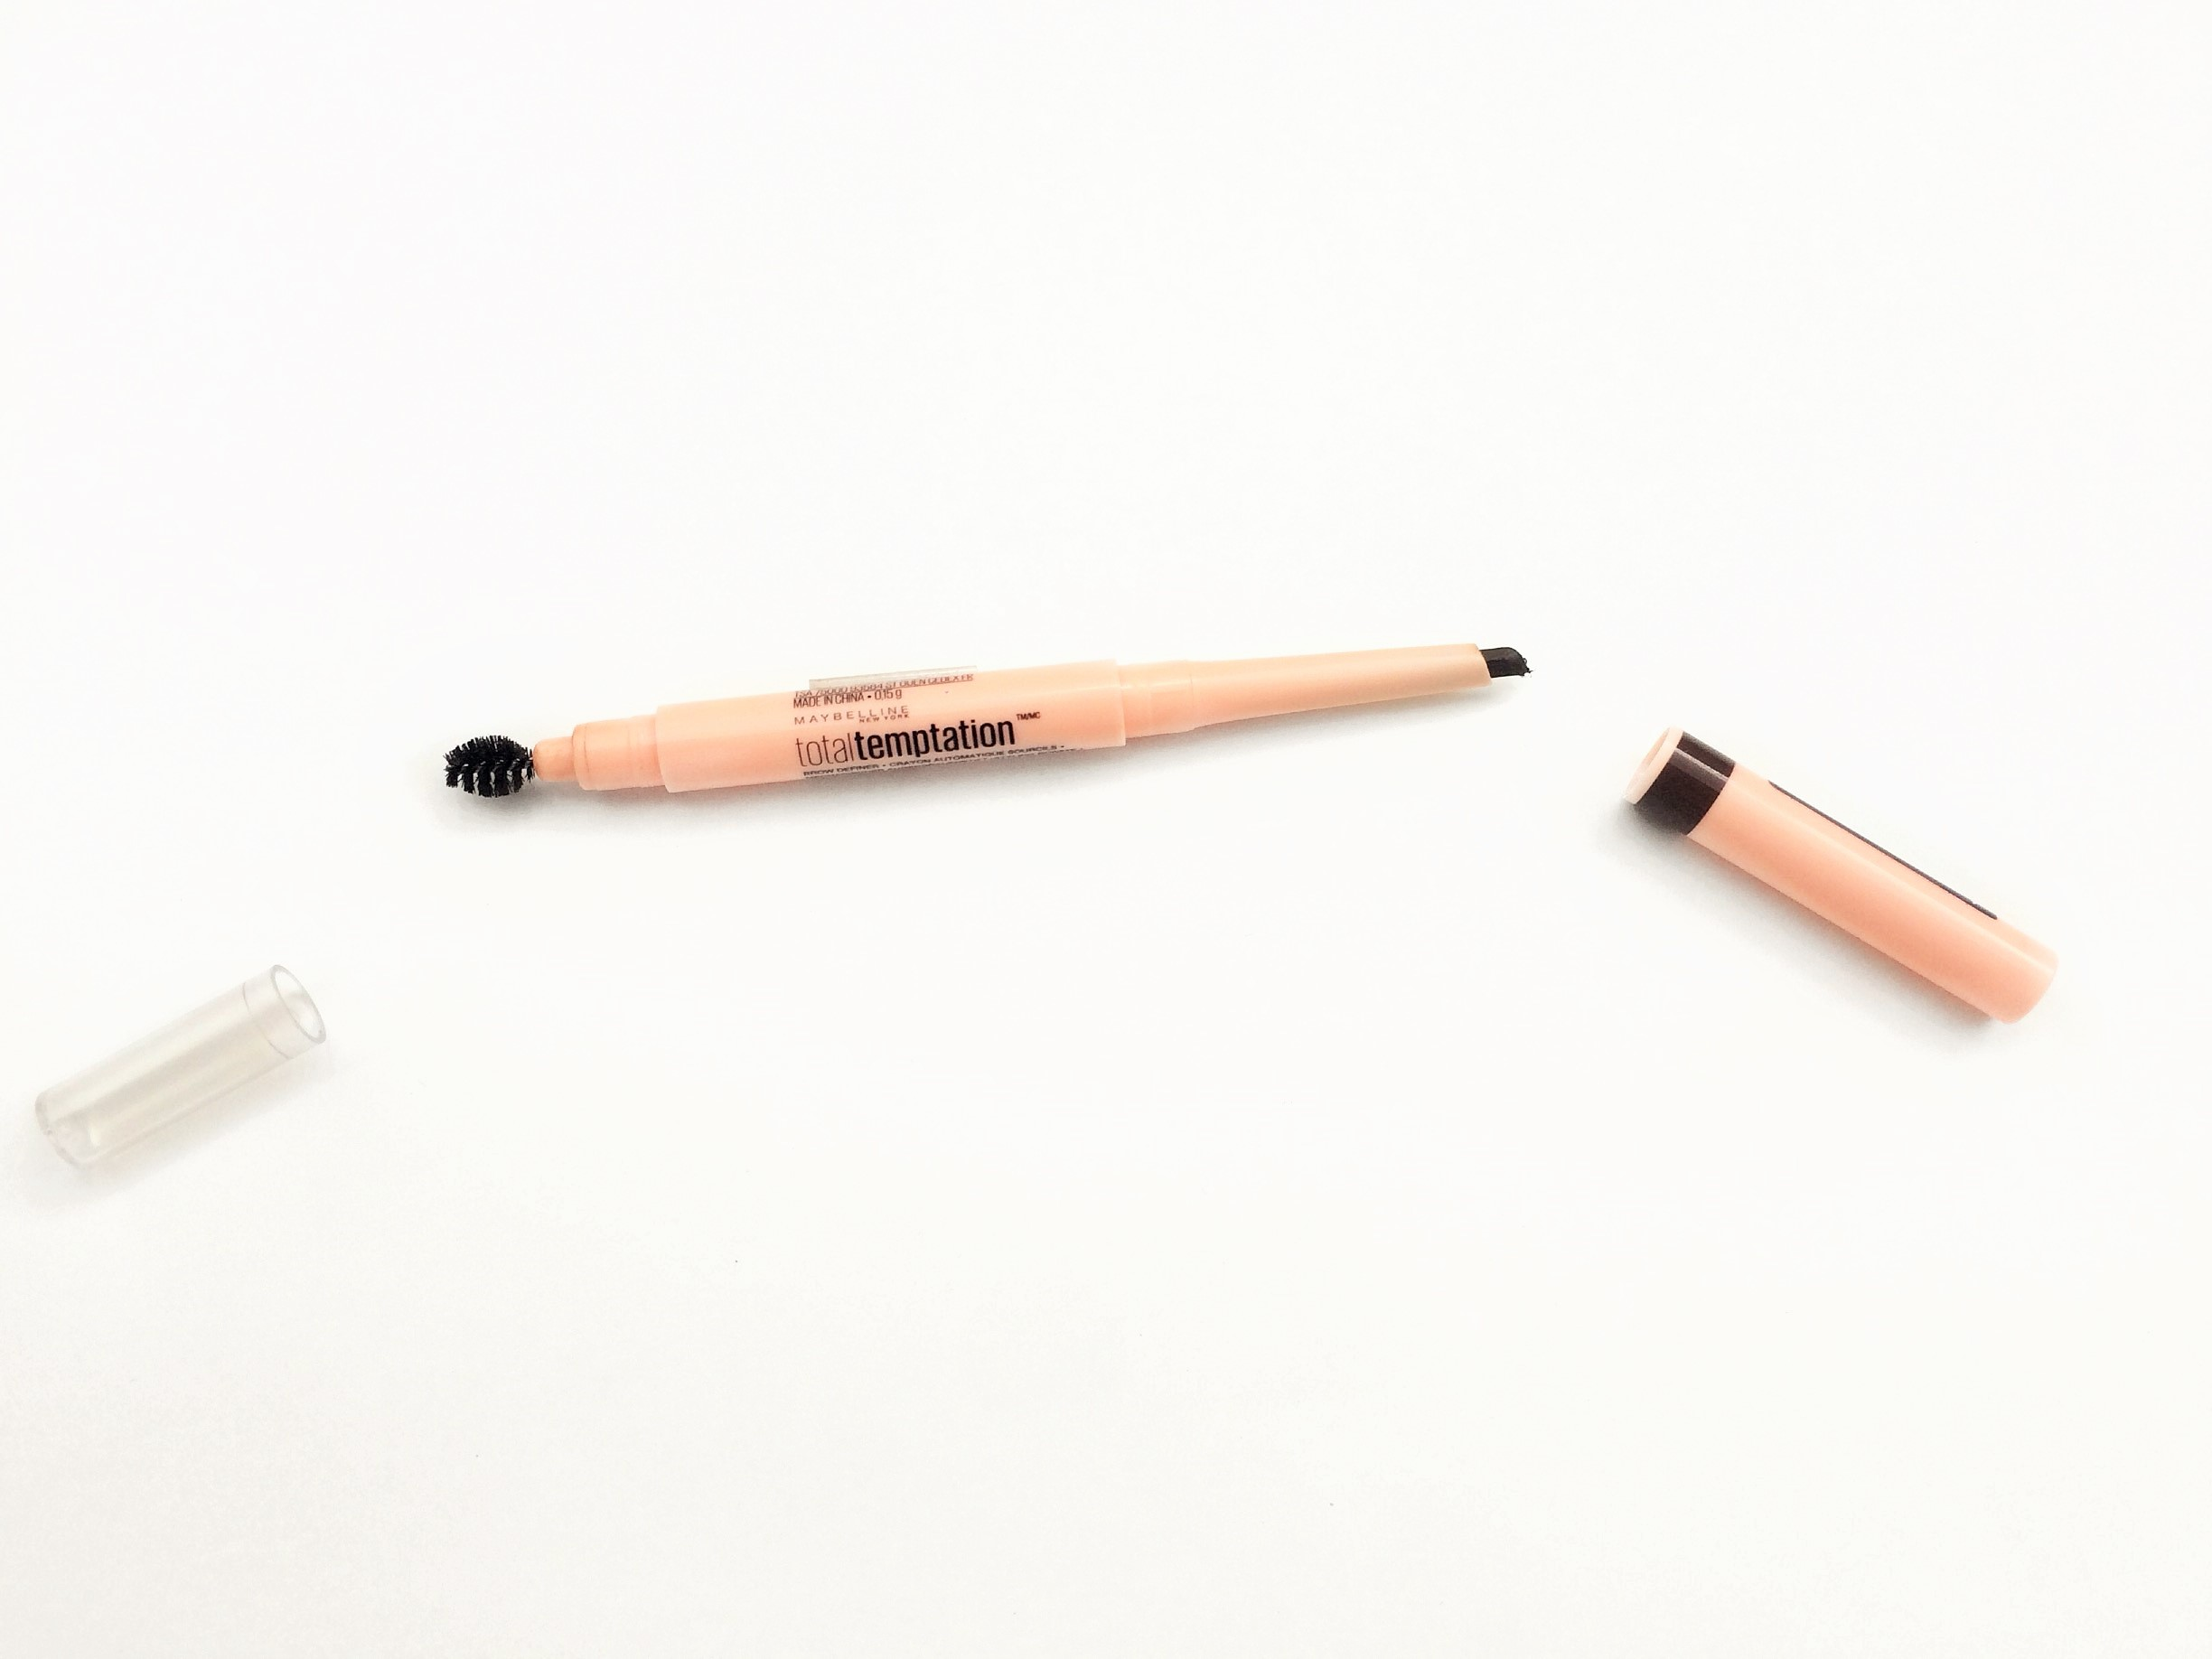 Maybelline Total Temptation Brow Definer Review (6)